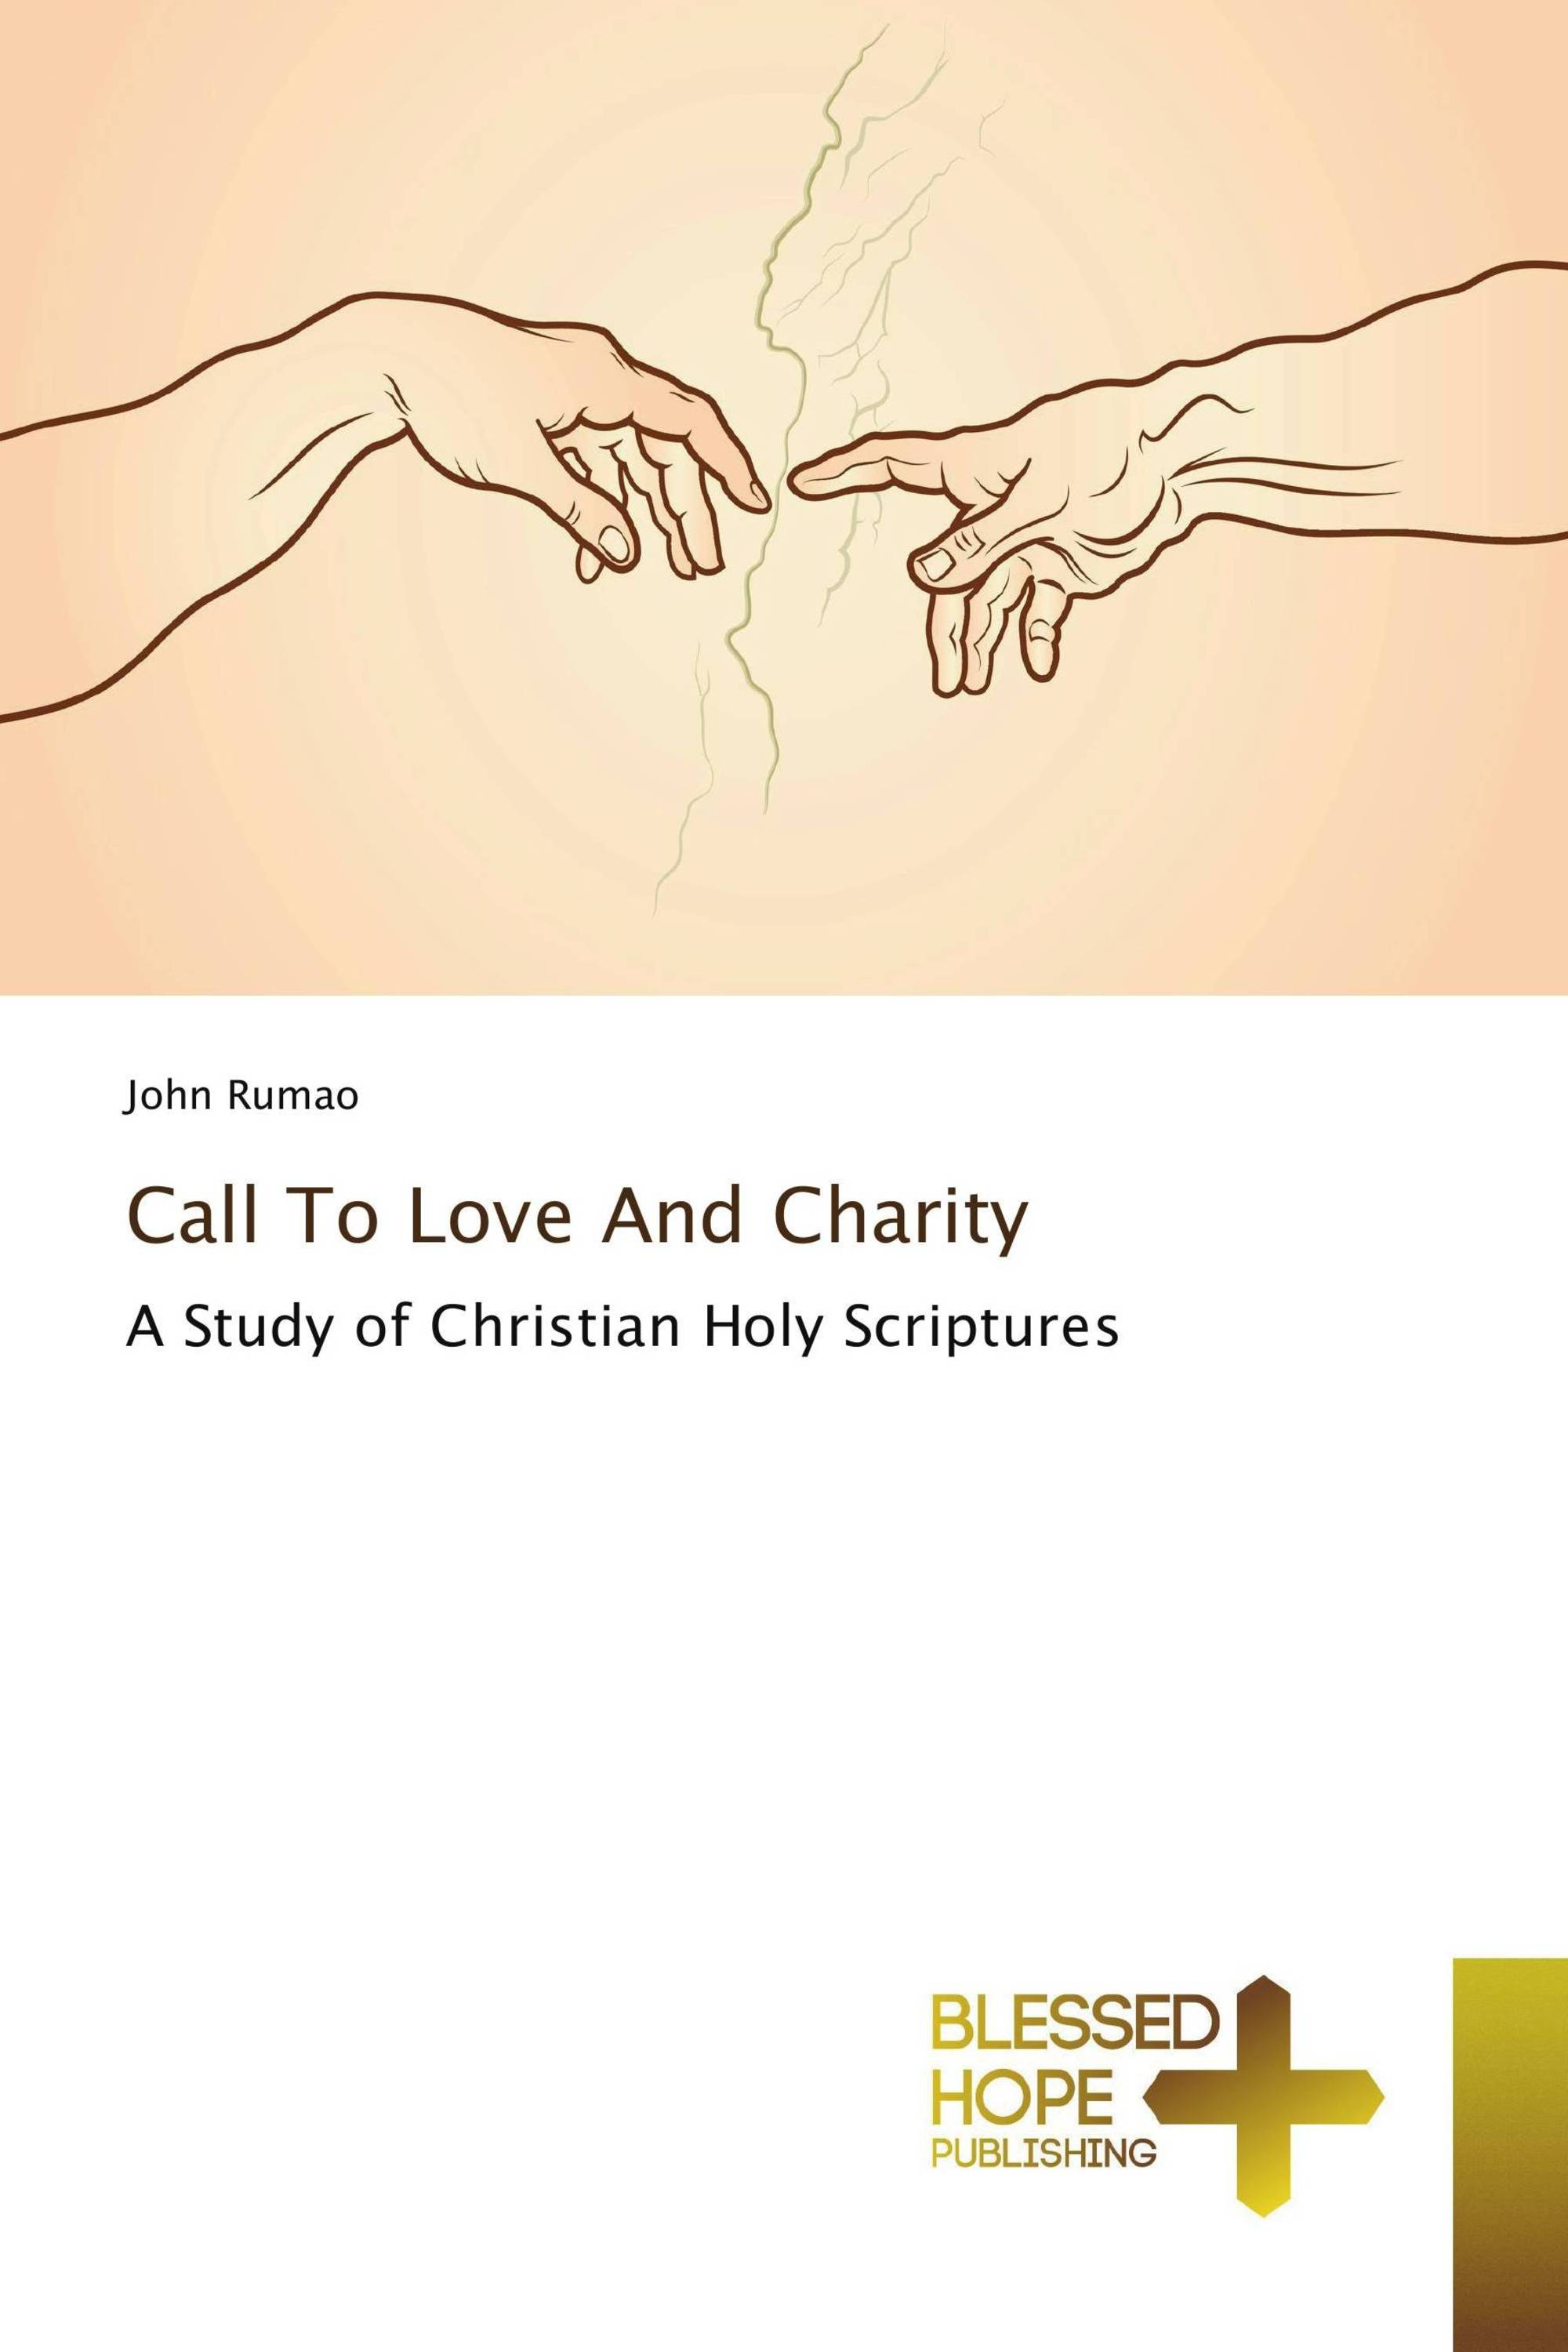 Call To Love And Charity